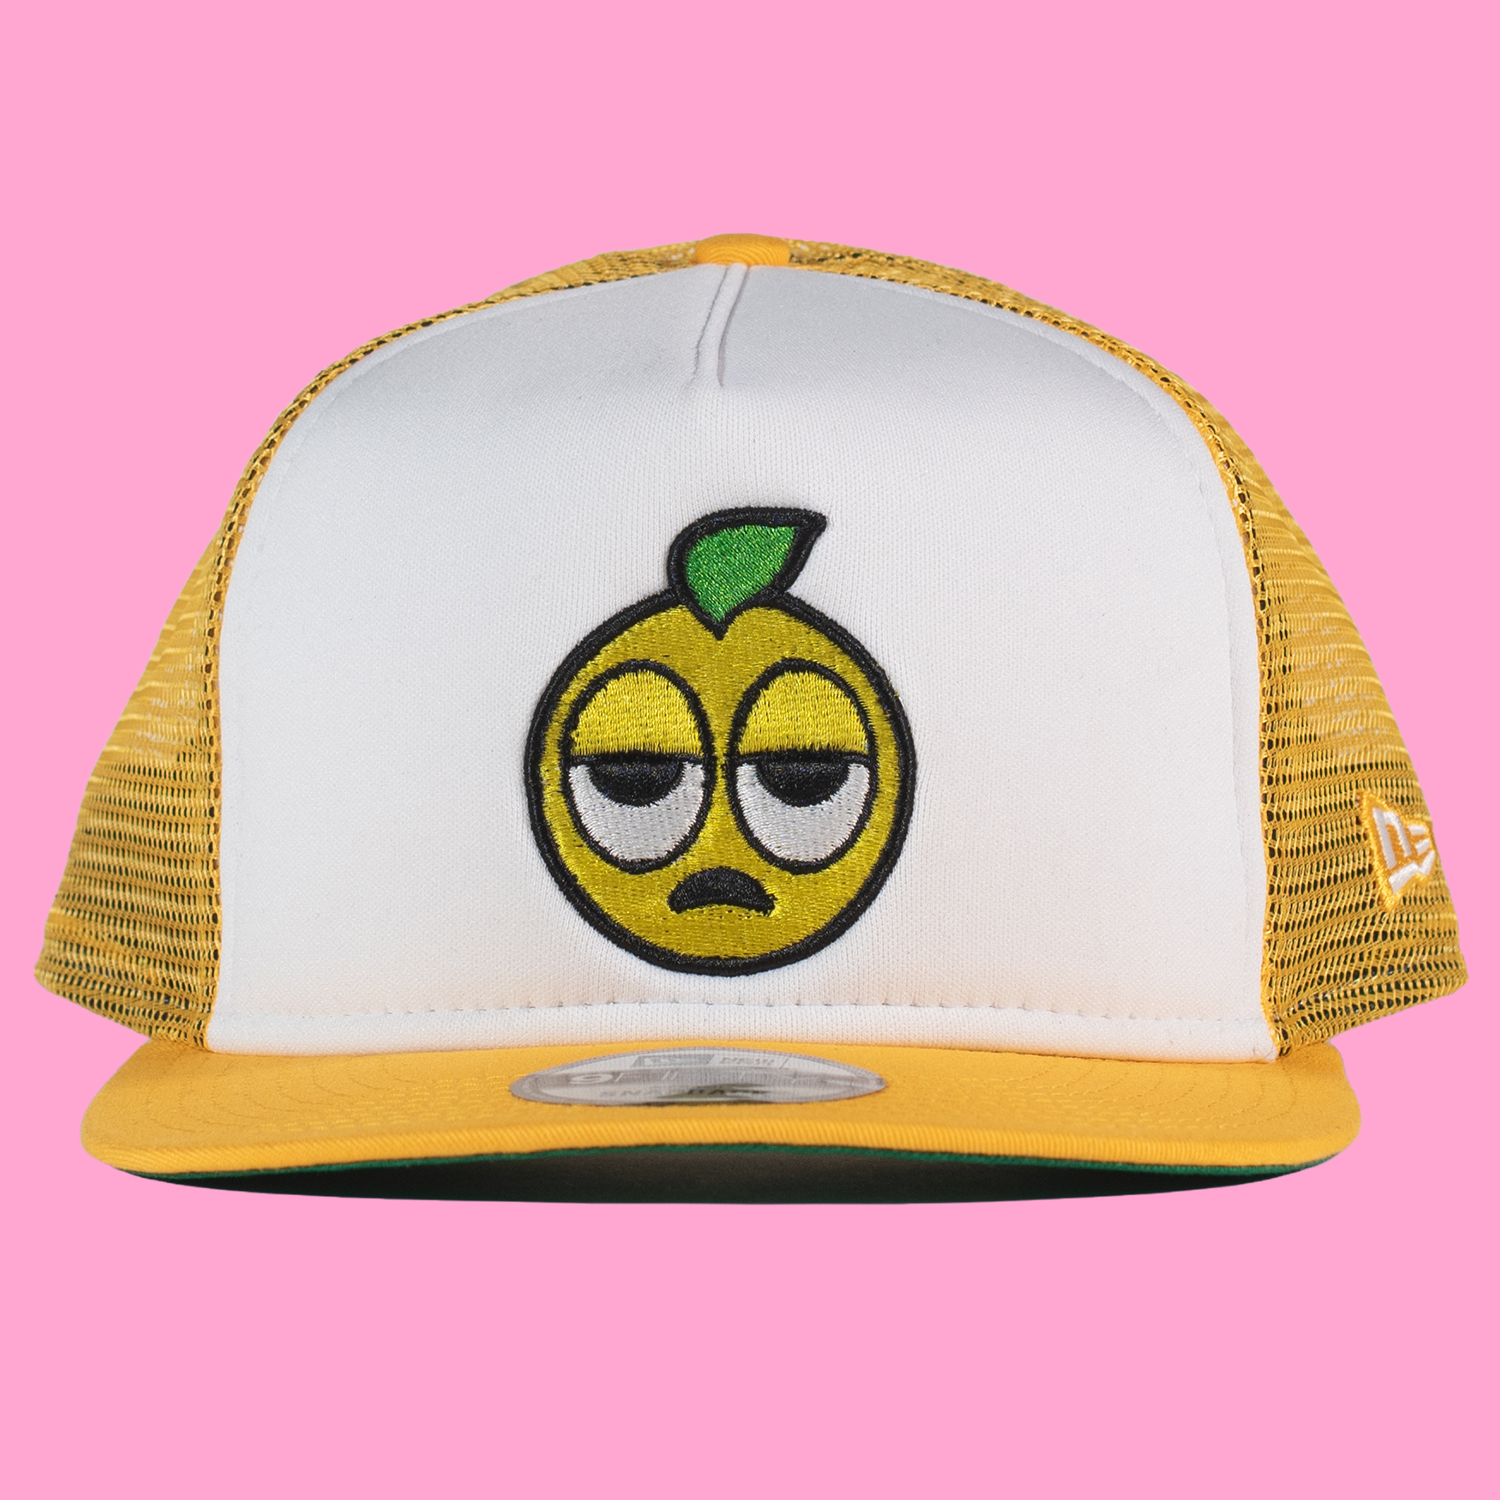 The Lemon Man New Era Trucker Hat in Yellow